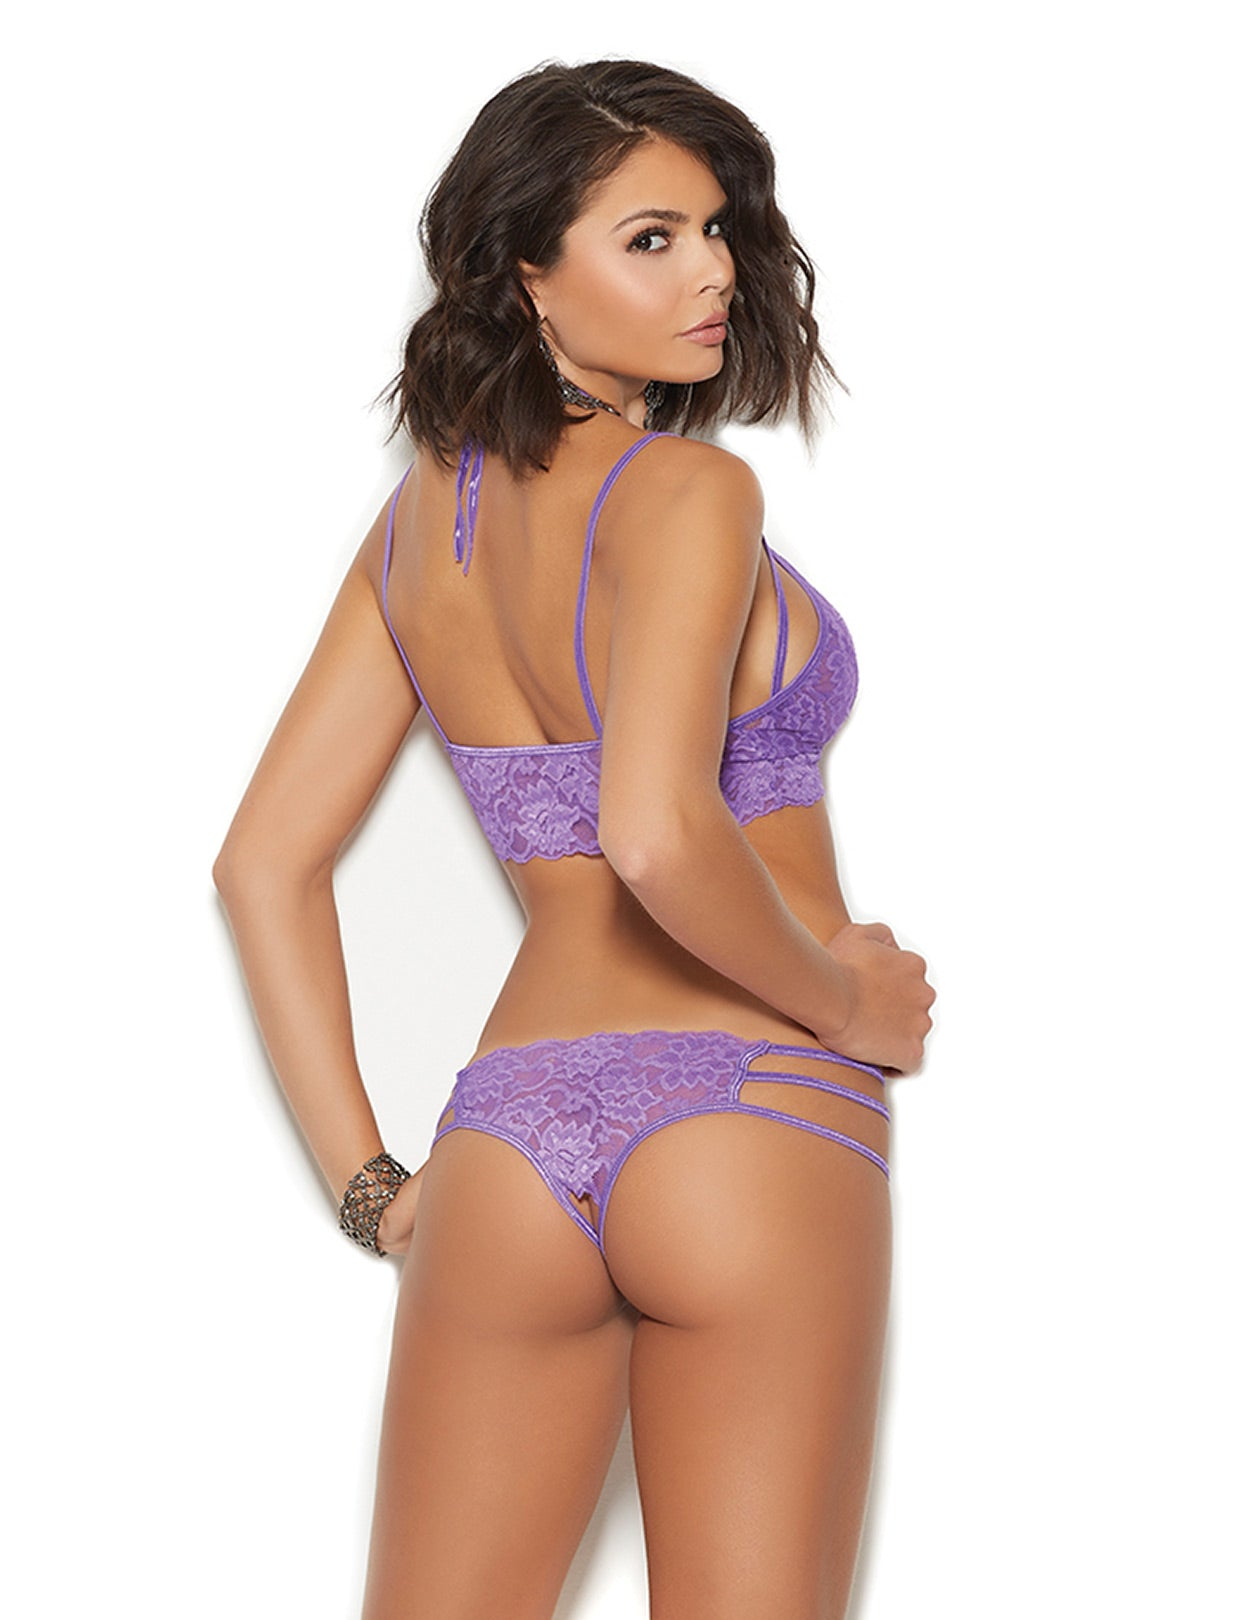 Crotchless Brazilian Panty Set